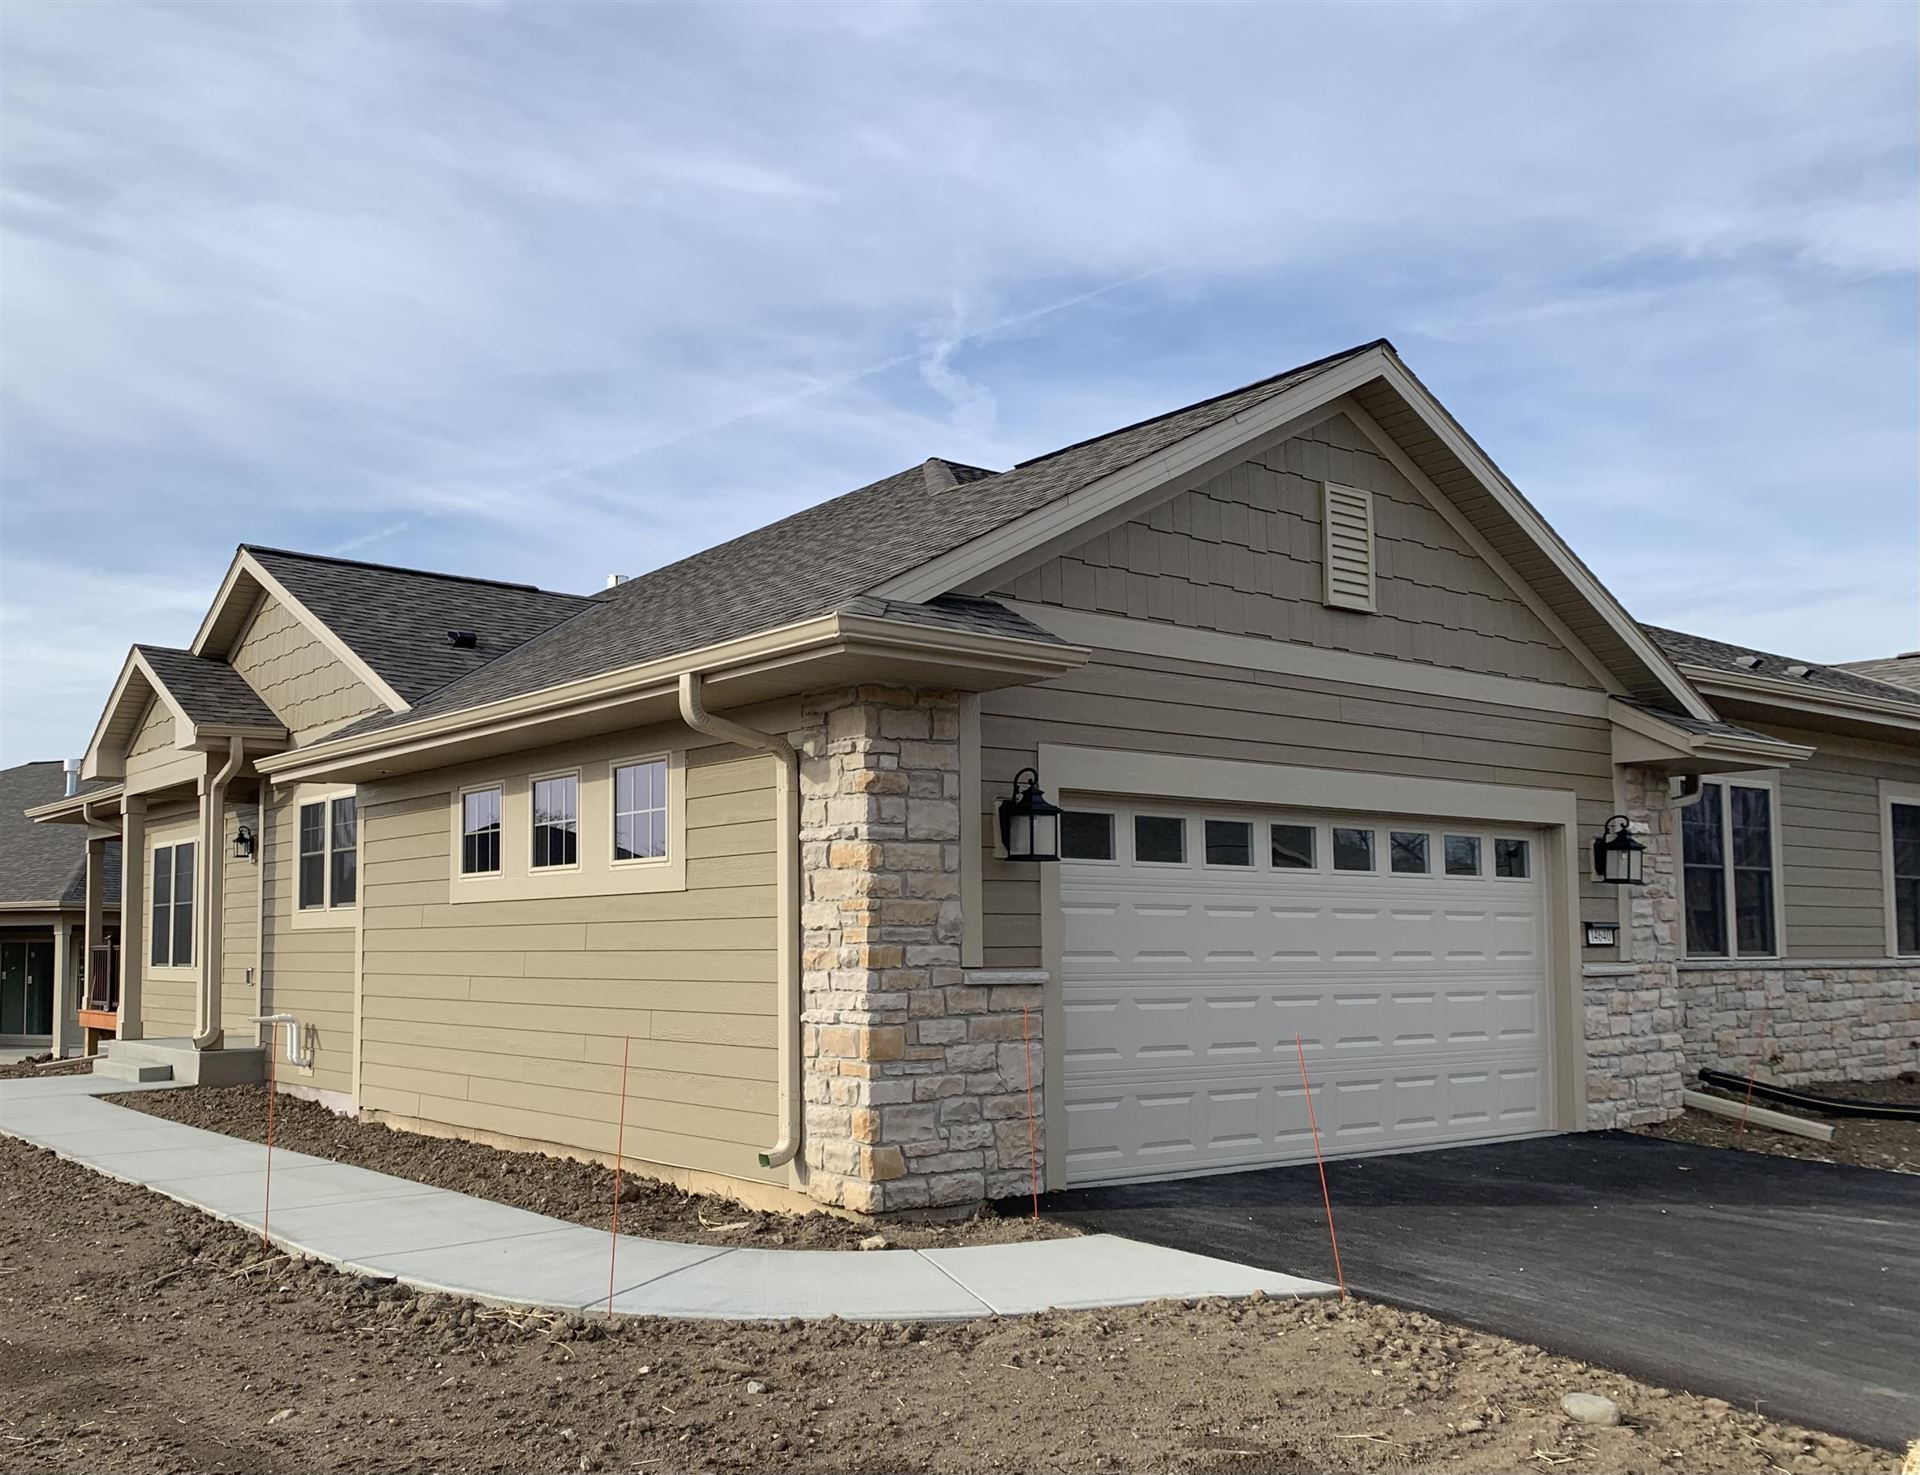 14640 W Hickory Hills Dr #1502, New Berlin, WI 53151 - #: 1719136